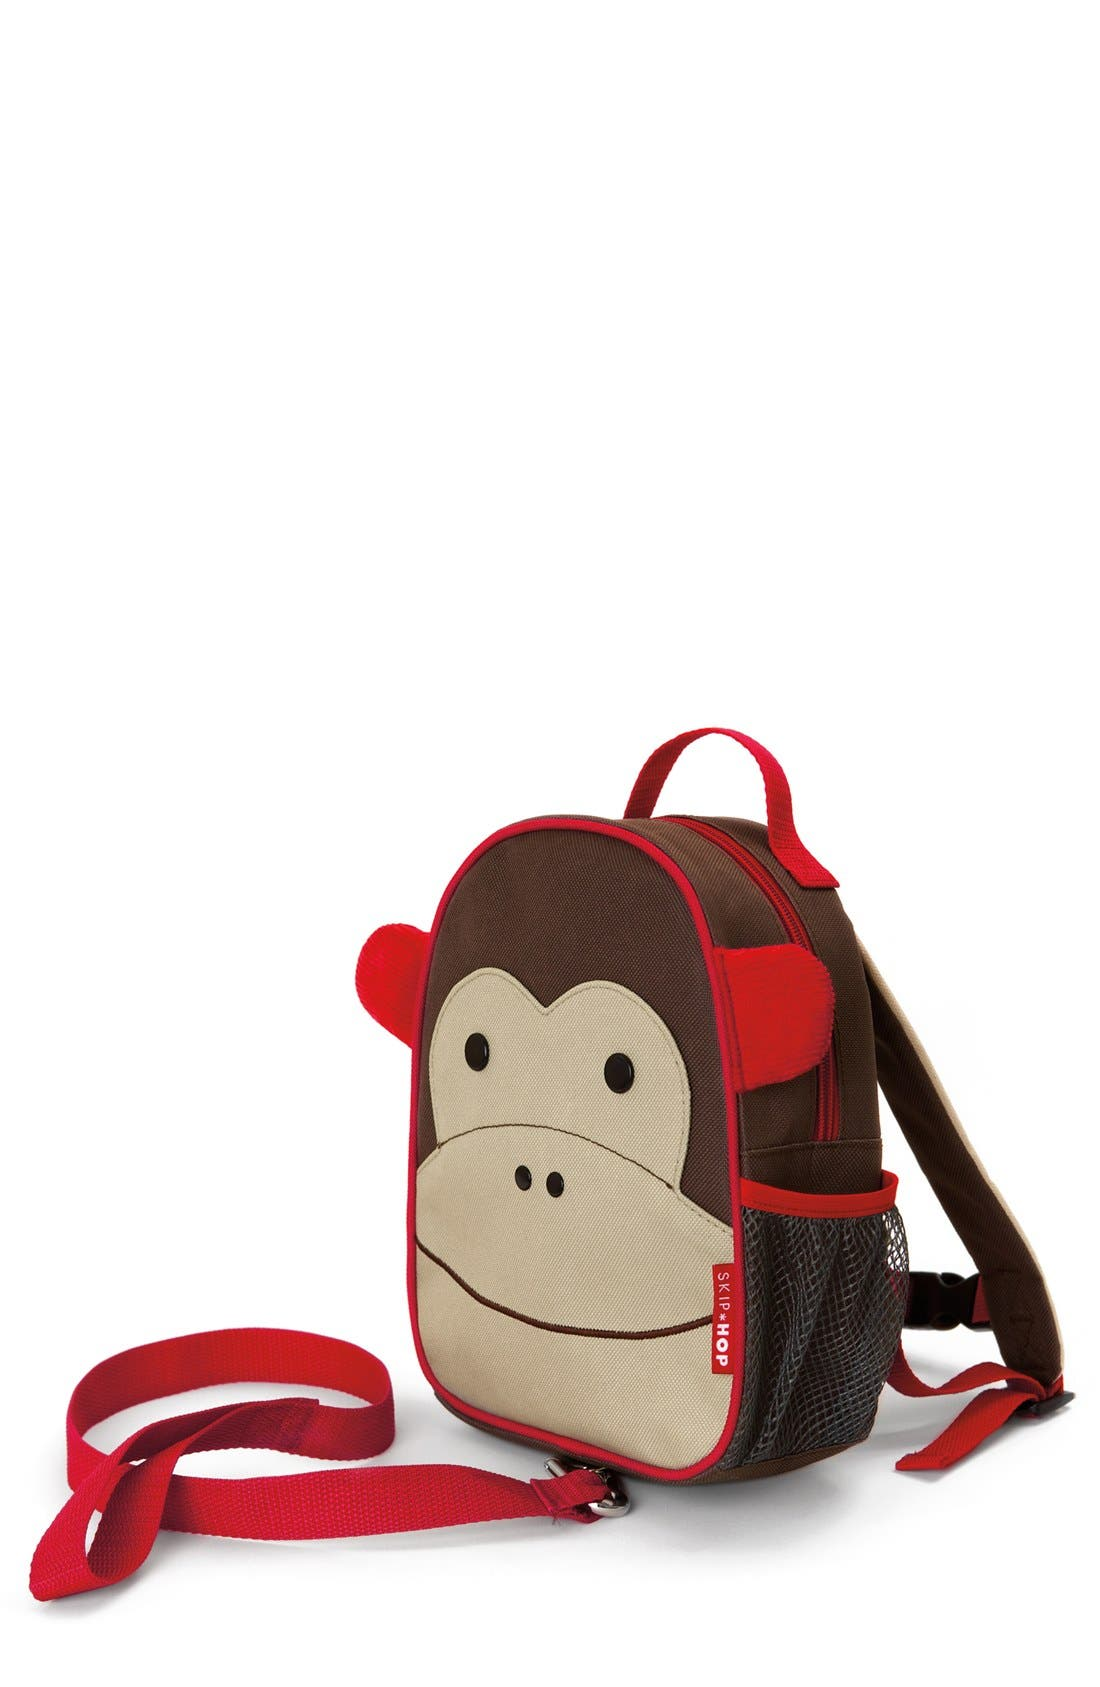 'Zoo' Safety Harness Backpack,                             Main thumbnail 1, color,                             Brown